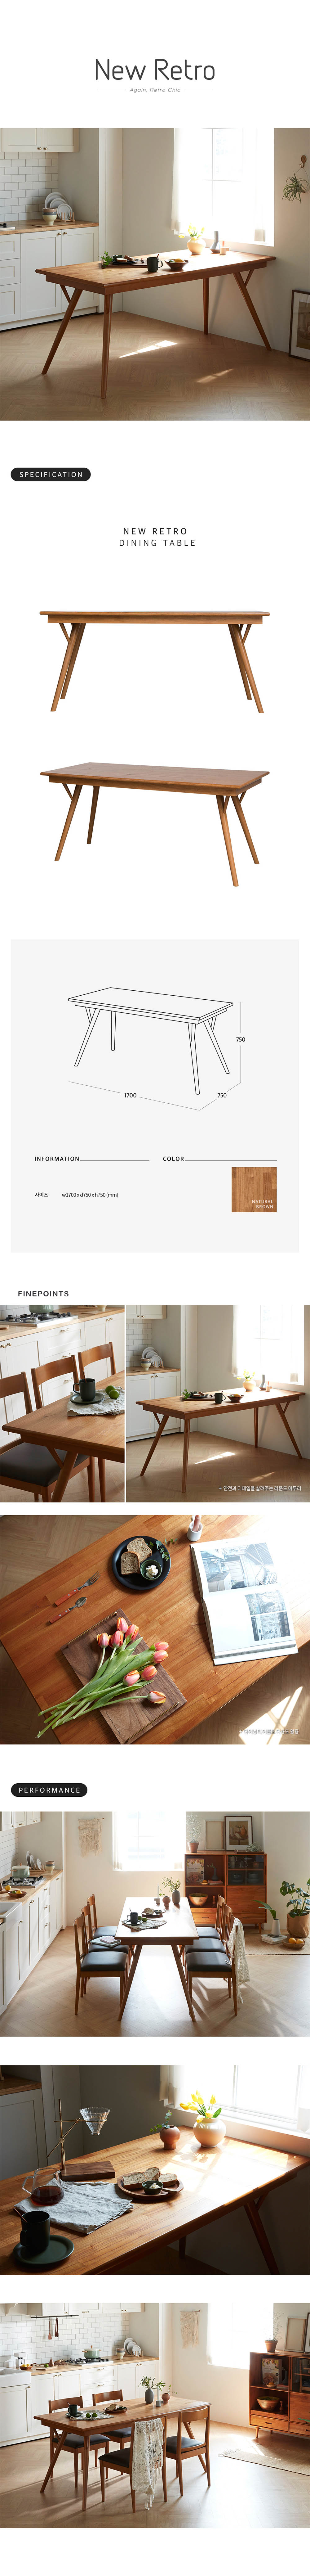 New_Retro_Dining_Table_1700_specs_by_born_in_colour